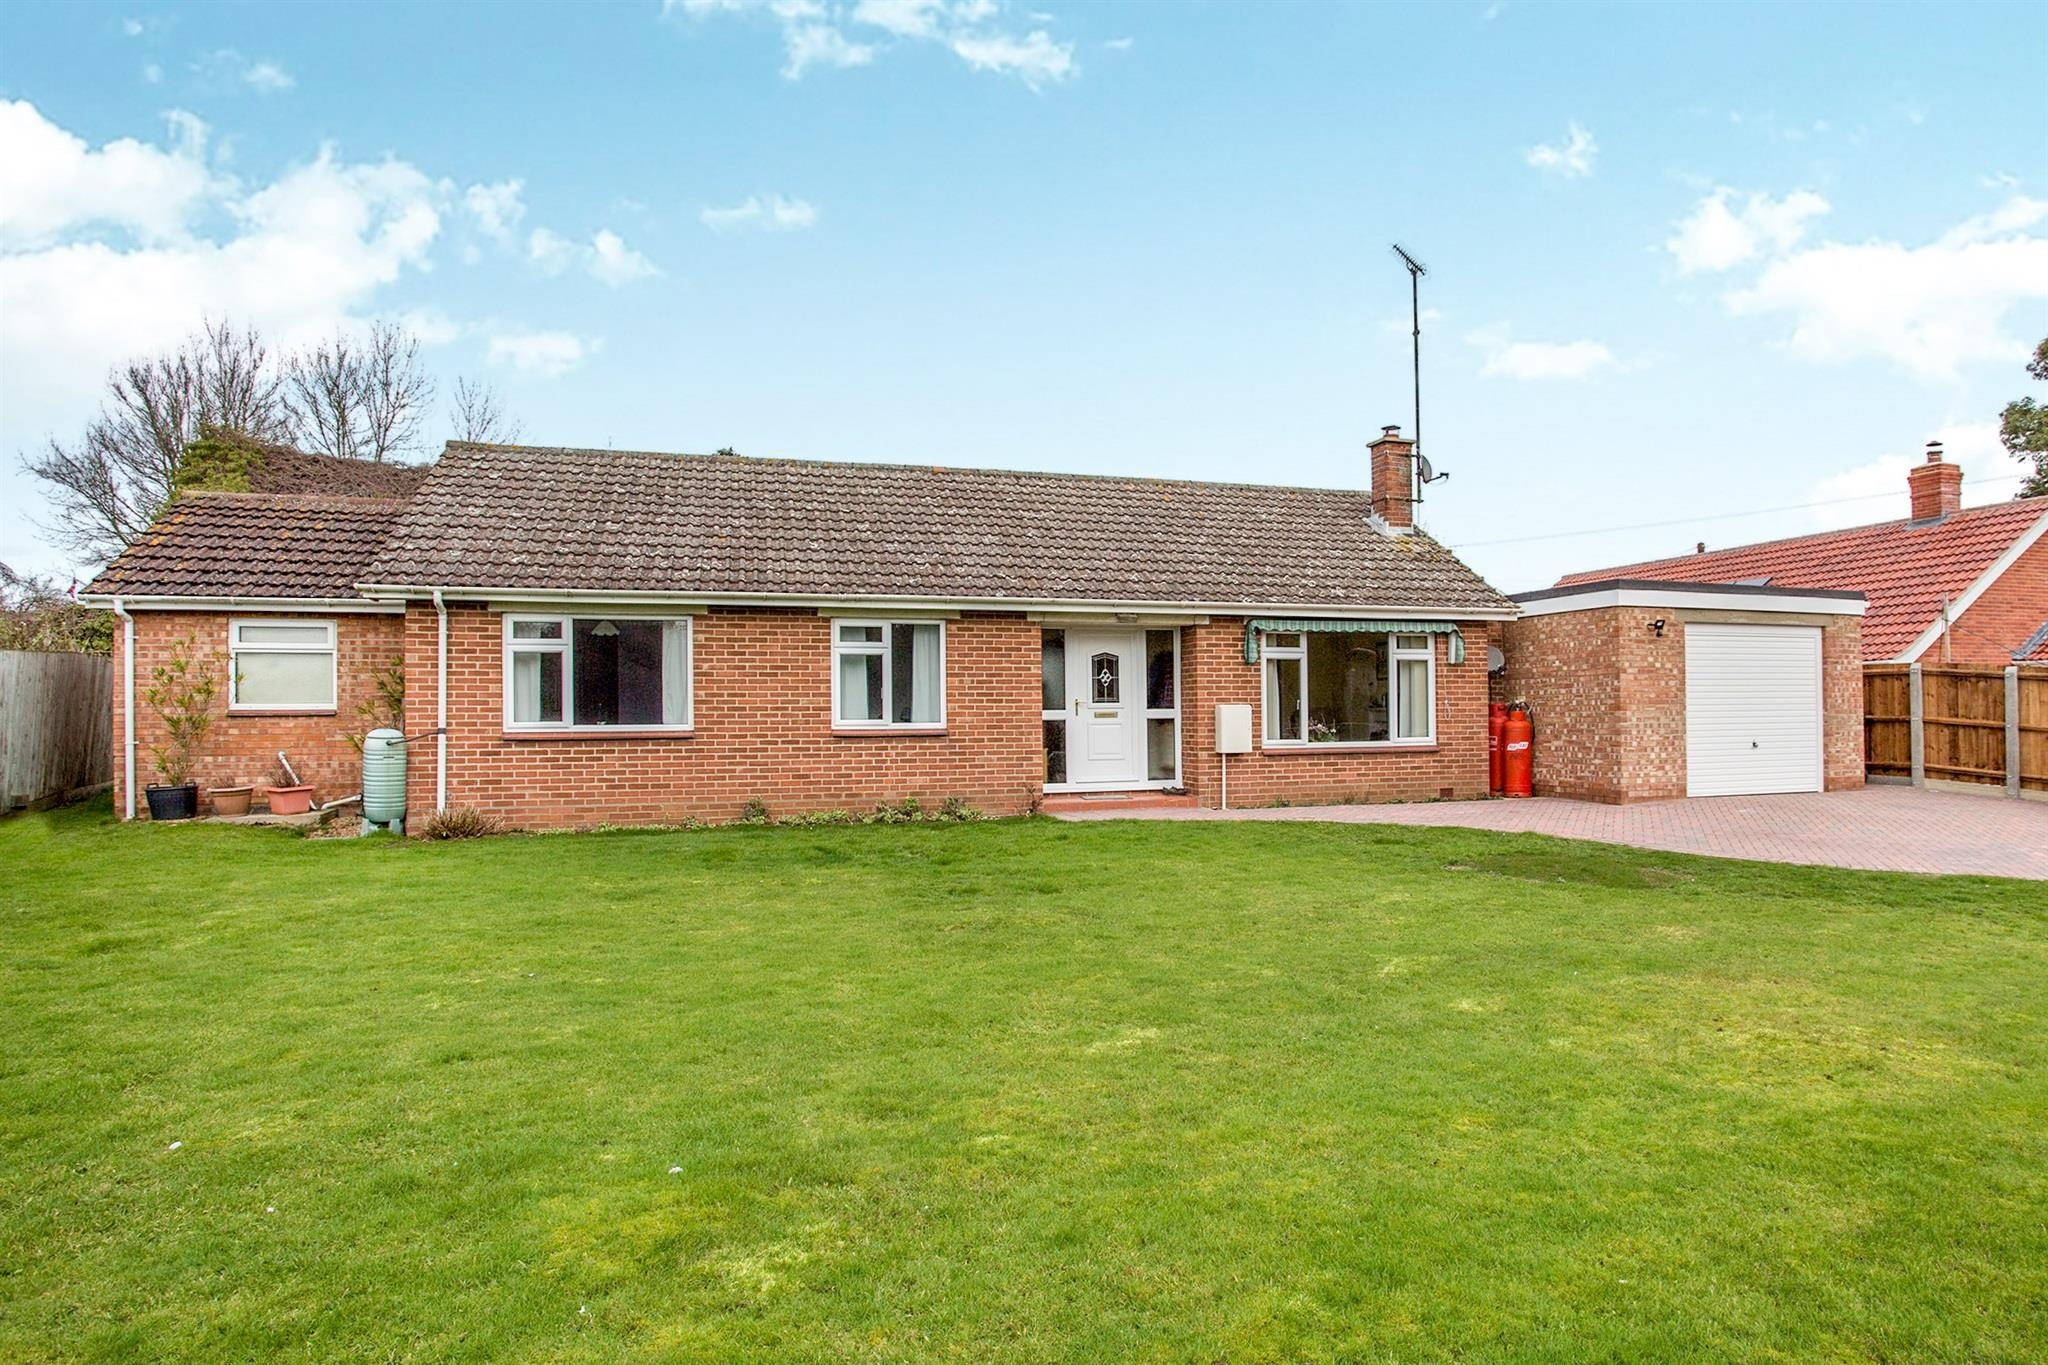 3 Bedroom Detached Bungalow For Sale Cherry Grove Vyces Road Framlingham Woodbridge Ip13 9rj